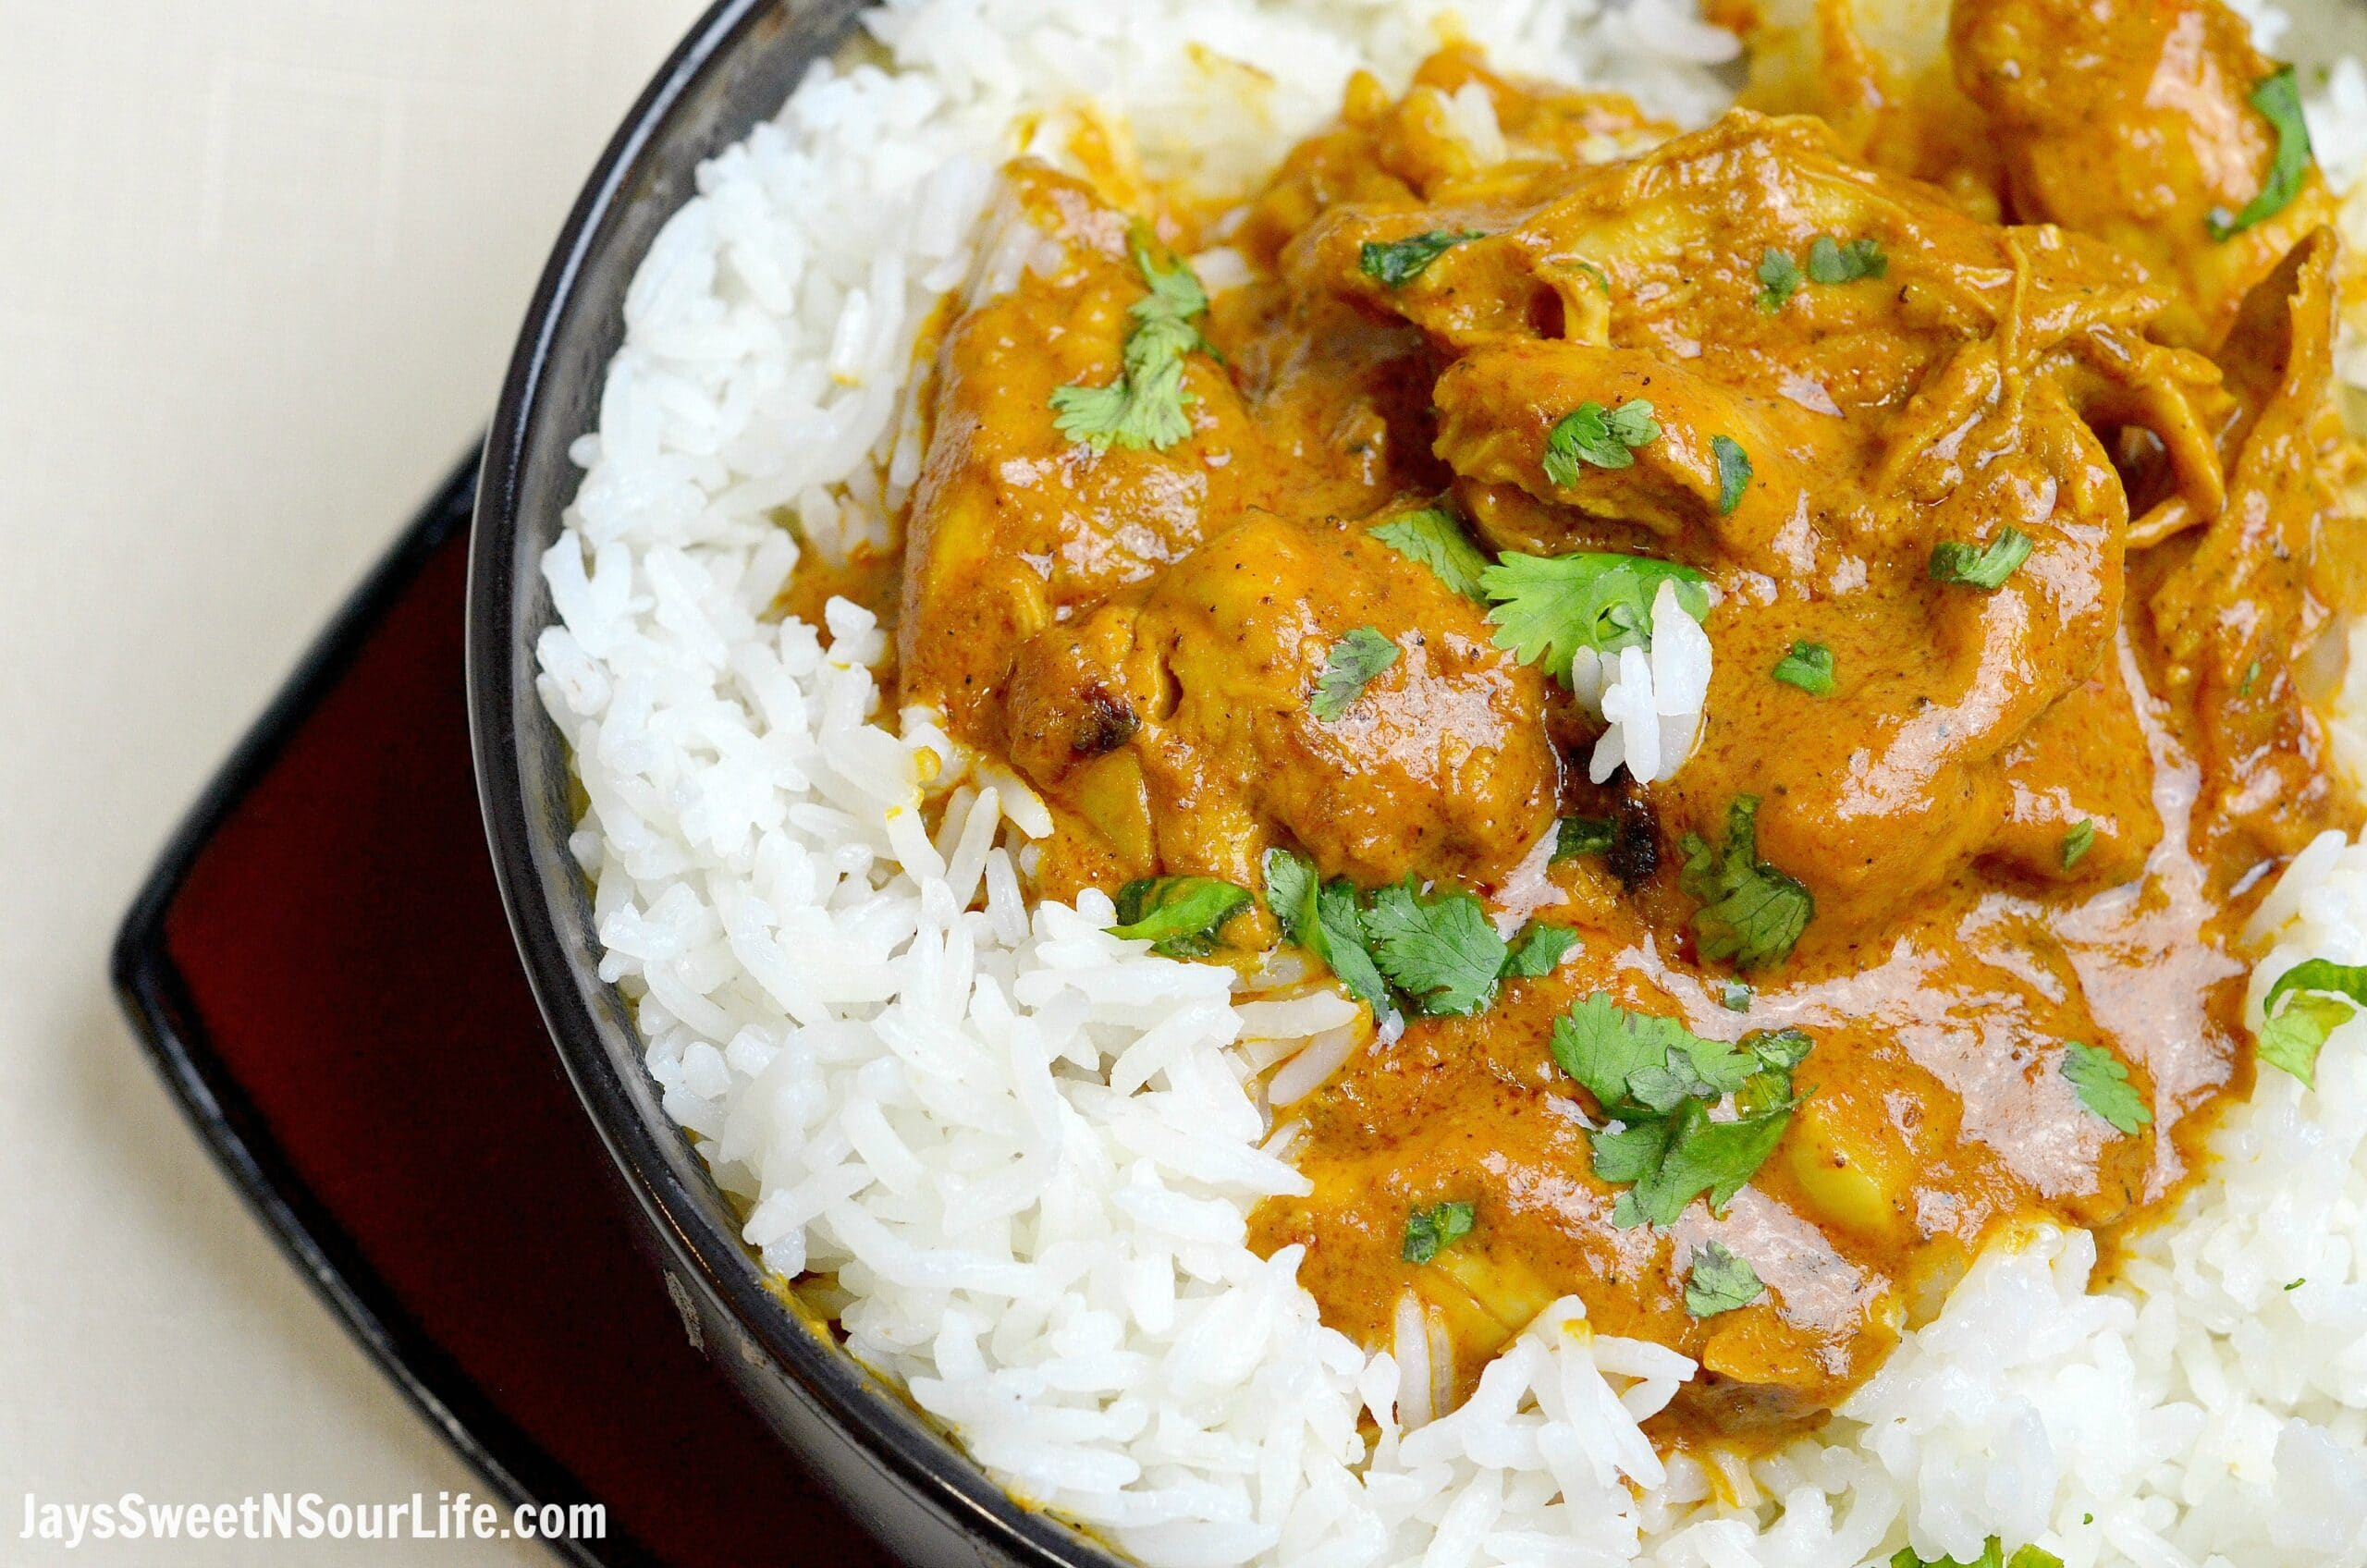 Pressure cooker indian butter chicken jays sweet n sour life if you loved this recipe be sure to check out my other many pressure cooker recipes here try my delicious lemon and herb chicken and mashed potatoes forumfinder Gallery